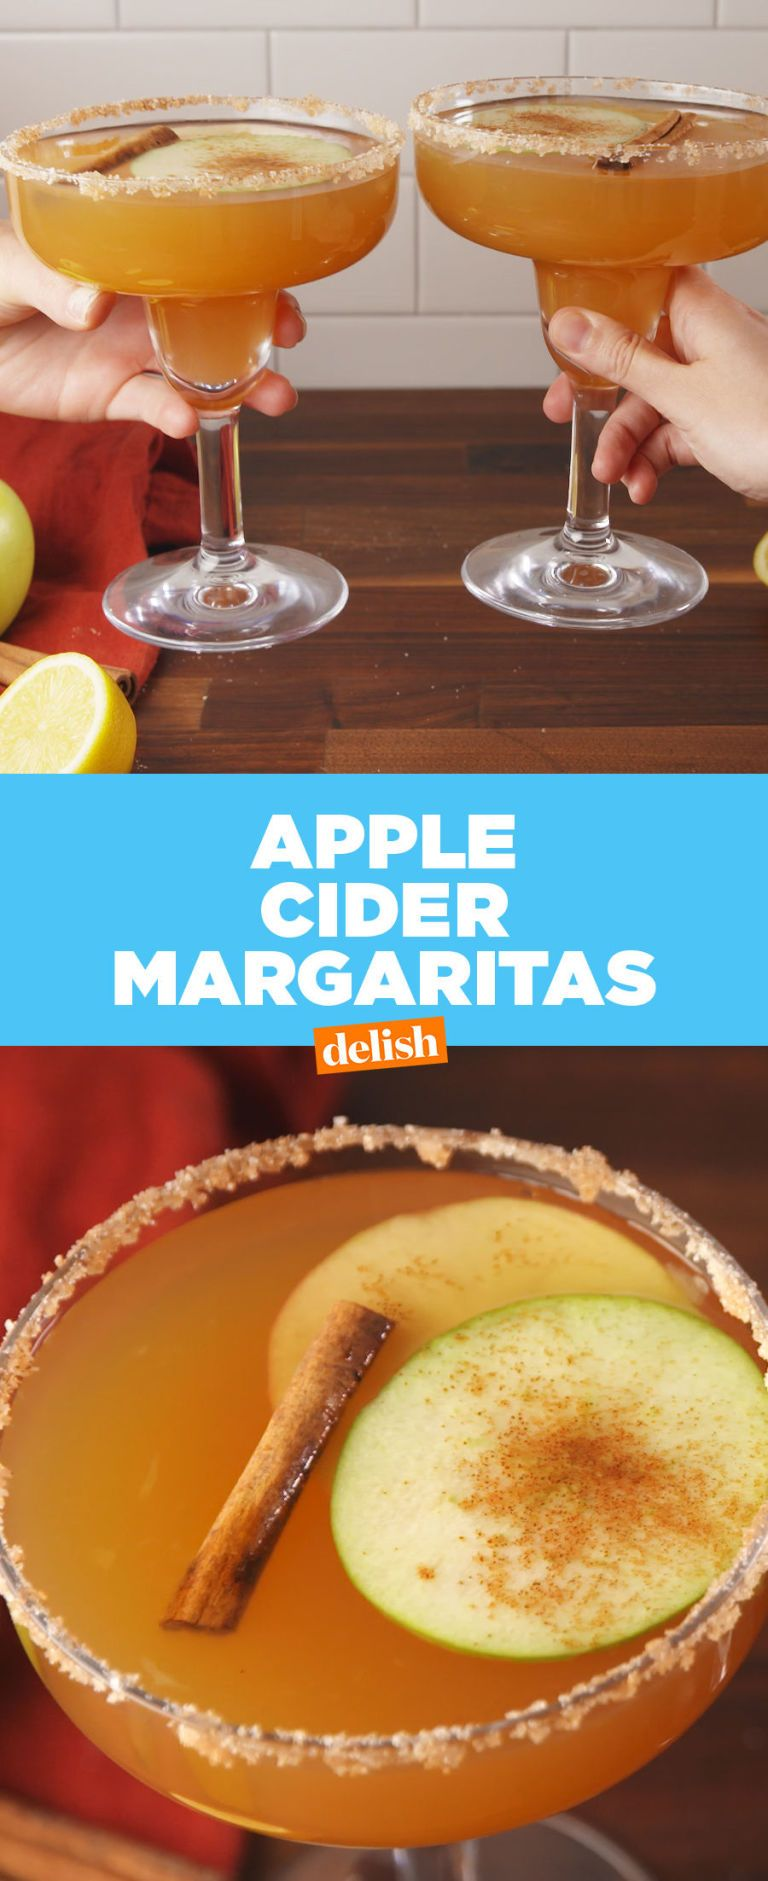 Apple Cider Margaritas Are The Ultimate Fall Drink